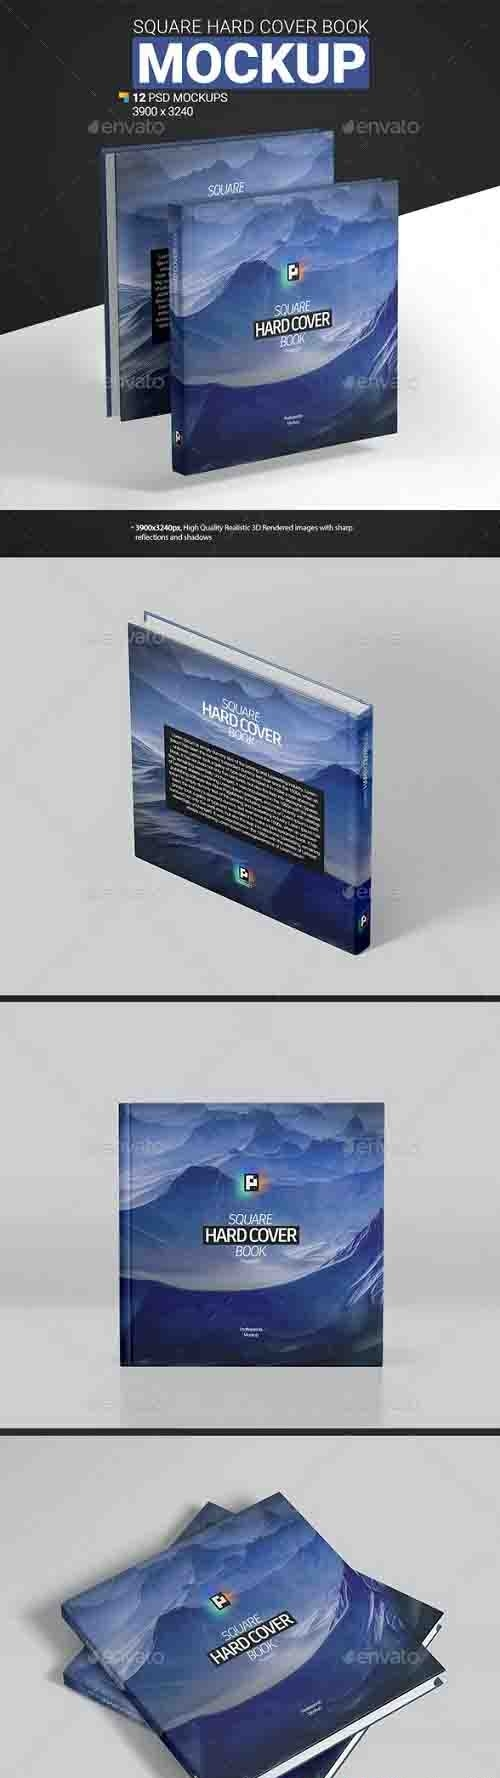 GraphicRiver - Square Hard Cover Book Mockup 30662468